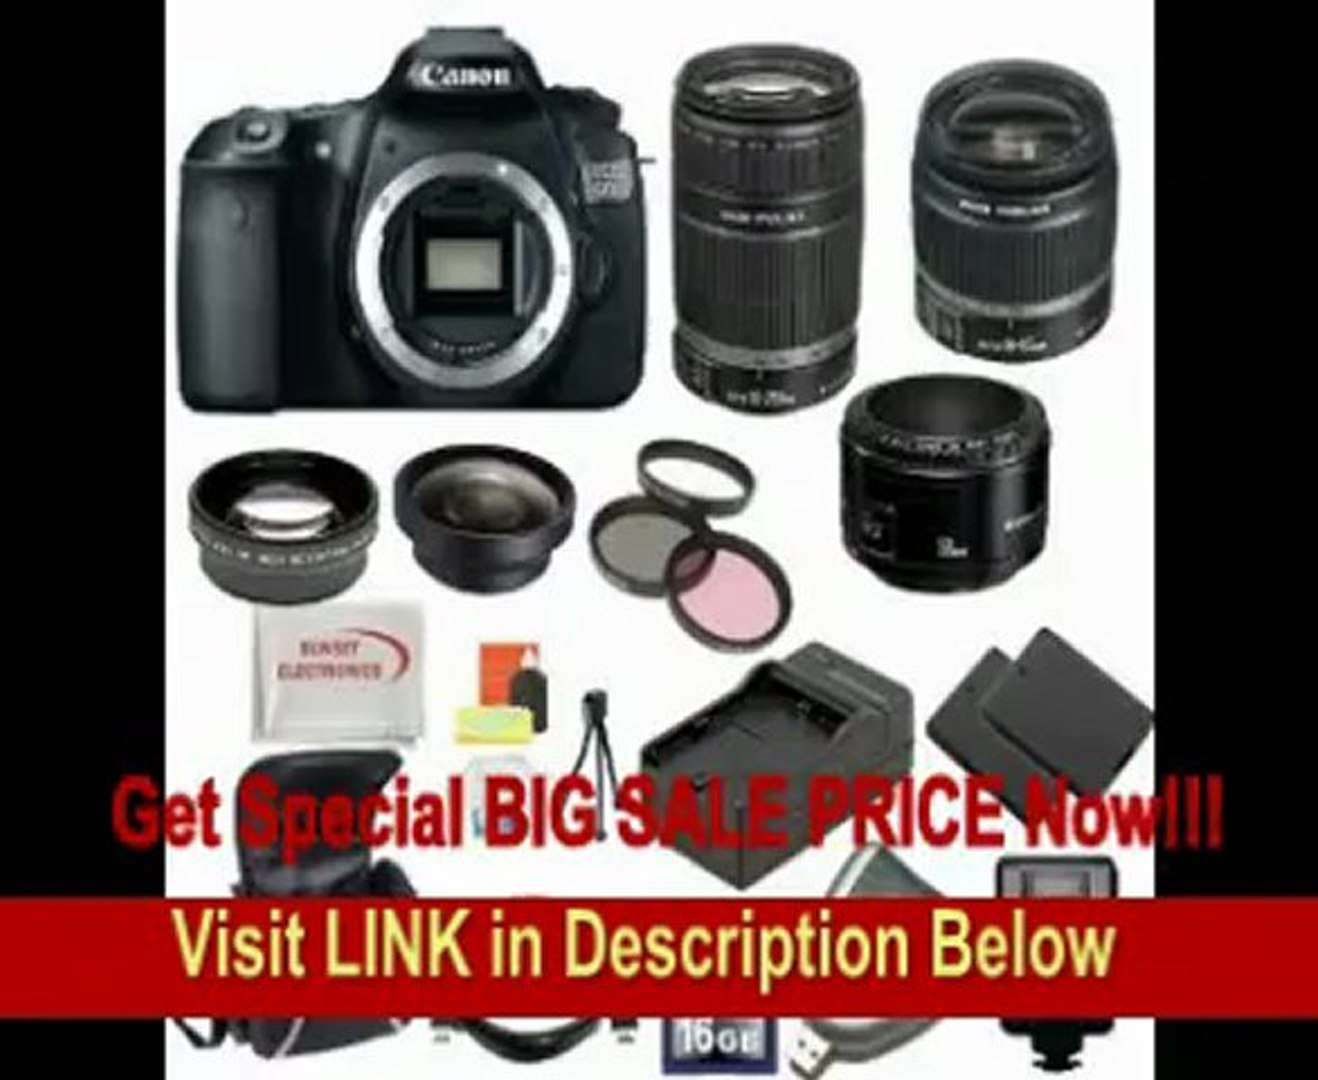 Canon EOS 60D DSLR Camera with 3 Canon Lens n Lens Pro Pack: Includes - Canon EF-S 18-55mm f3.5-5.6